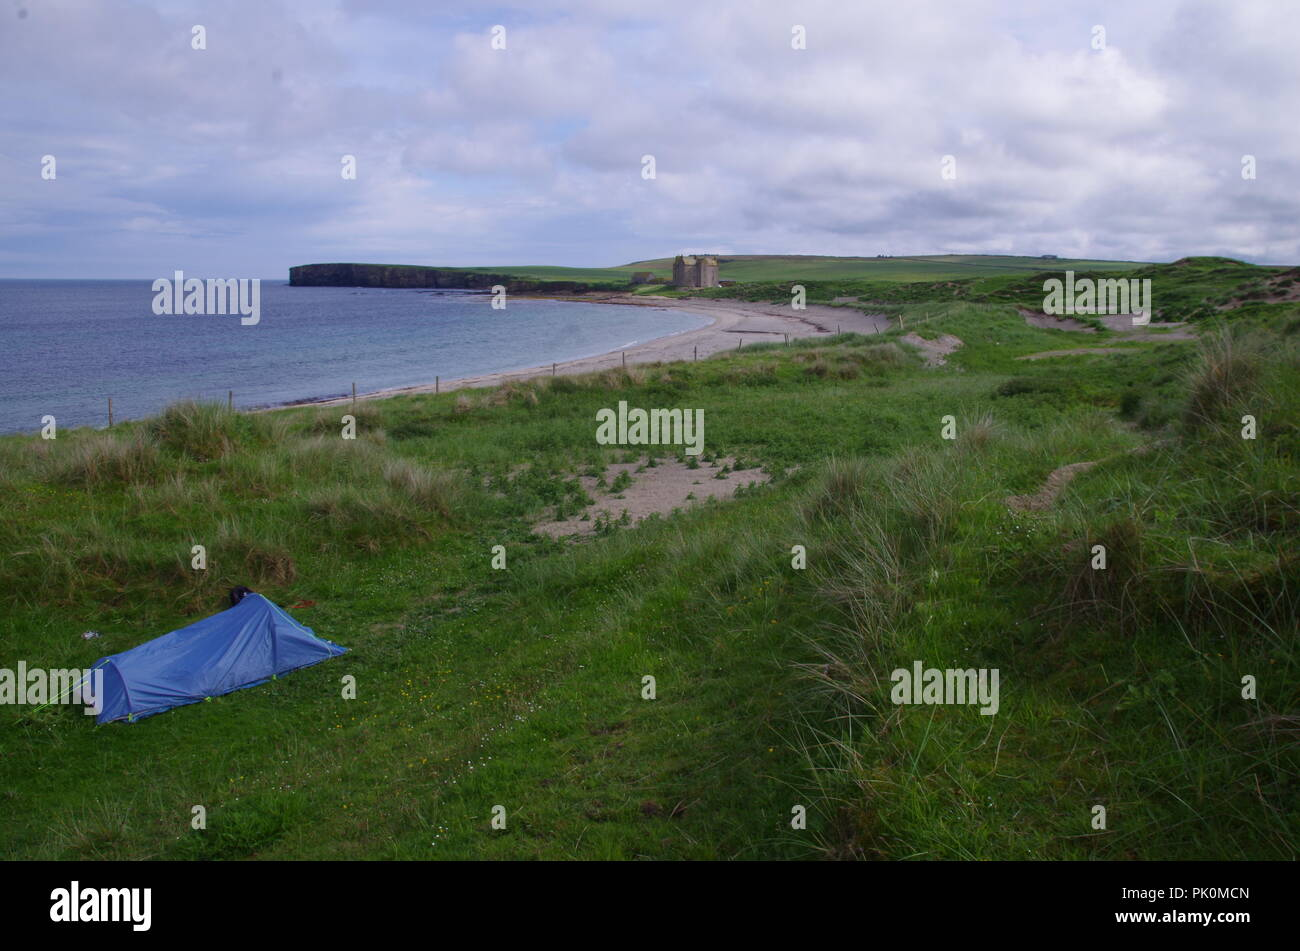 Wild camping at Freswick Bay. Freswick. John o' groats (Duncansby head) to lands end. Cornwall. End to end trail. Caithness. Highlands. Scotland. UK - Stock Image